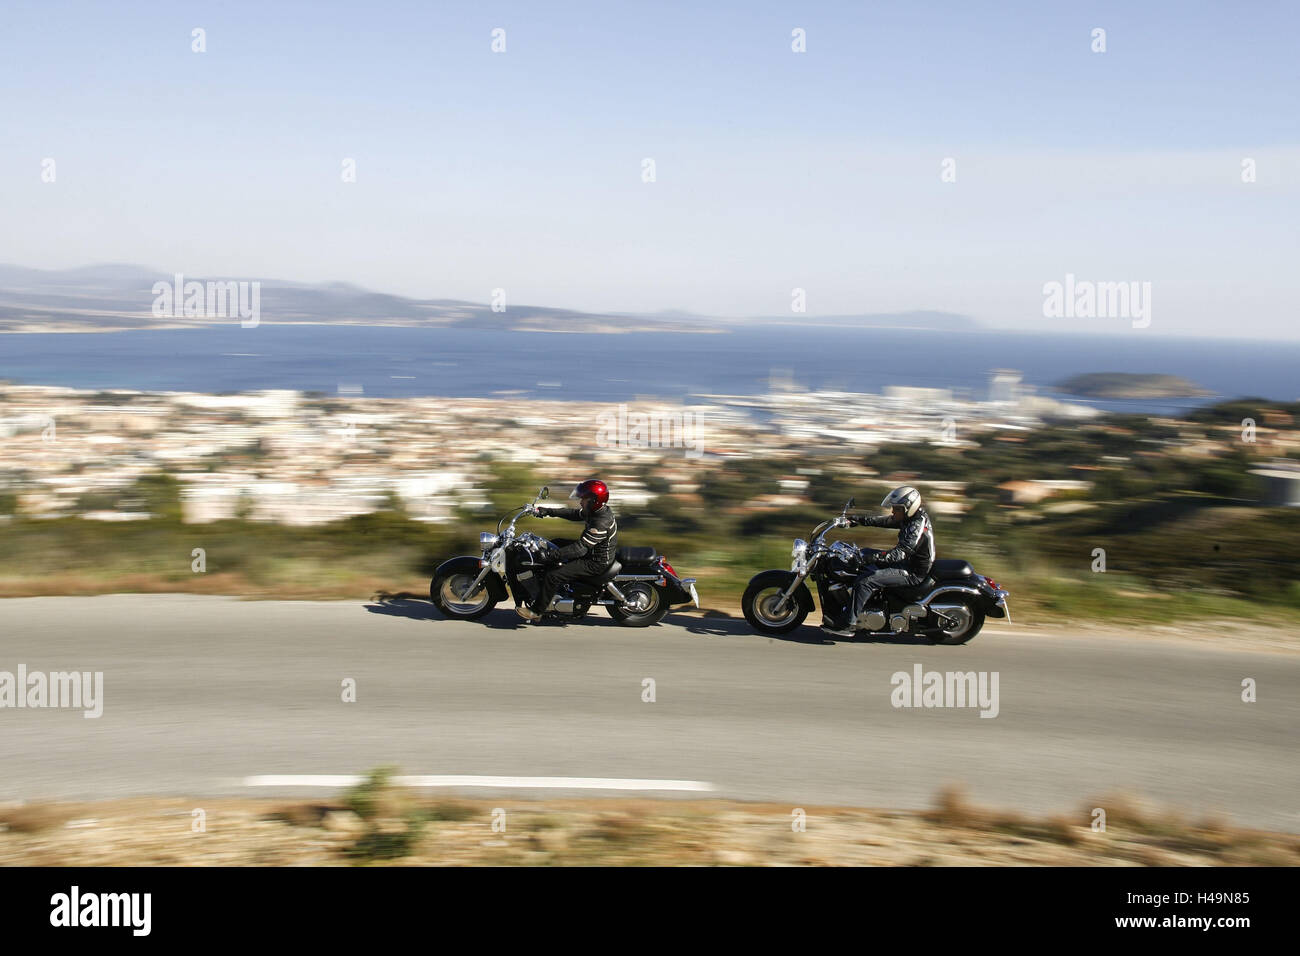 two motorcyclists, cruisers, country road, South of France, Mediterranean landscape, one after the other, - Stock Image